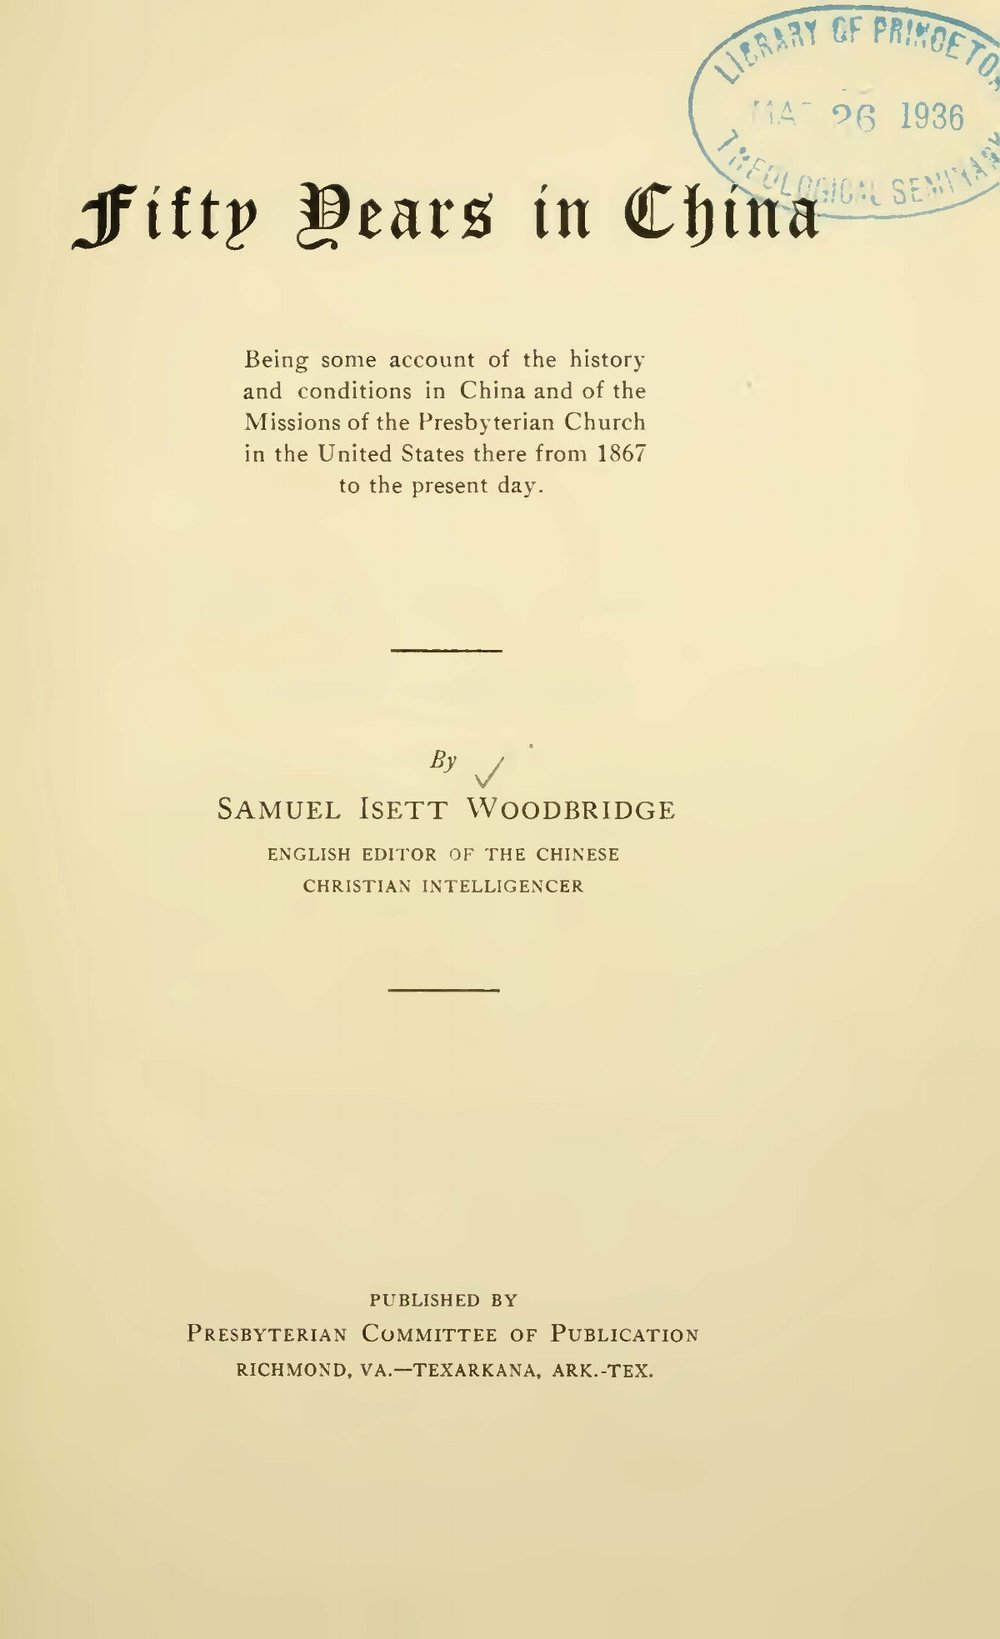 Woodbridge, Samuel Isett, Sr., Fifty Years in China Title Page.jpg